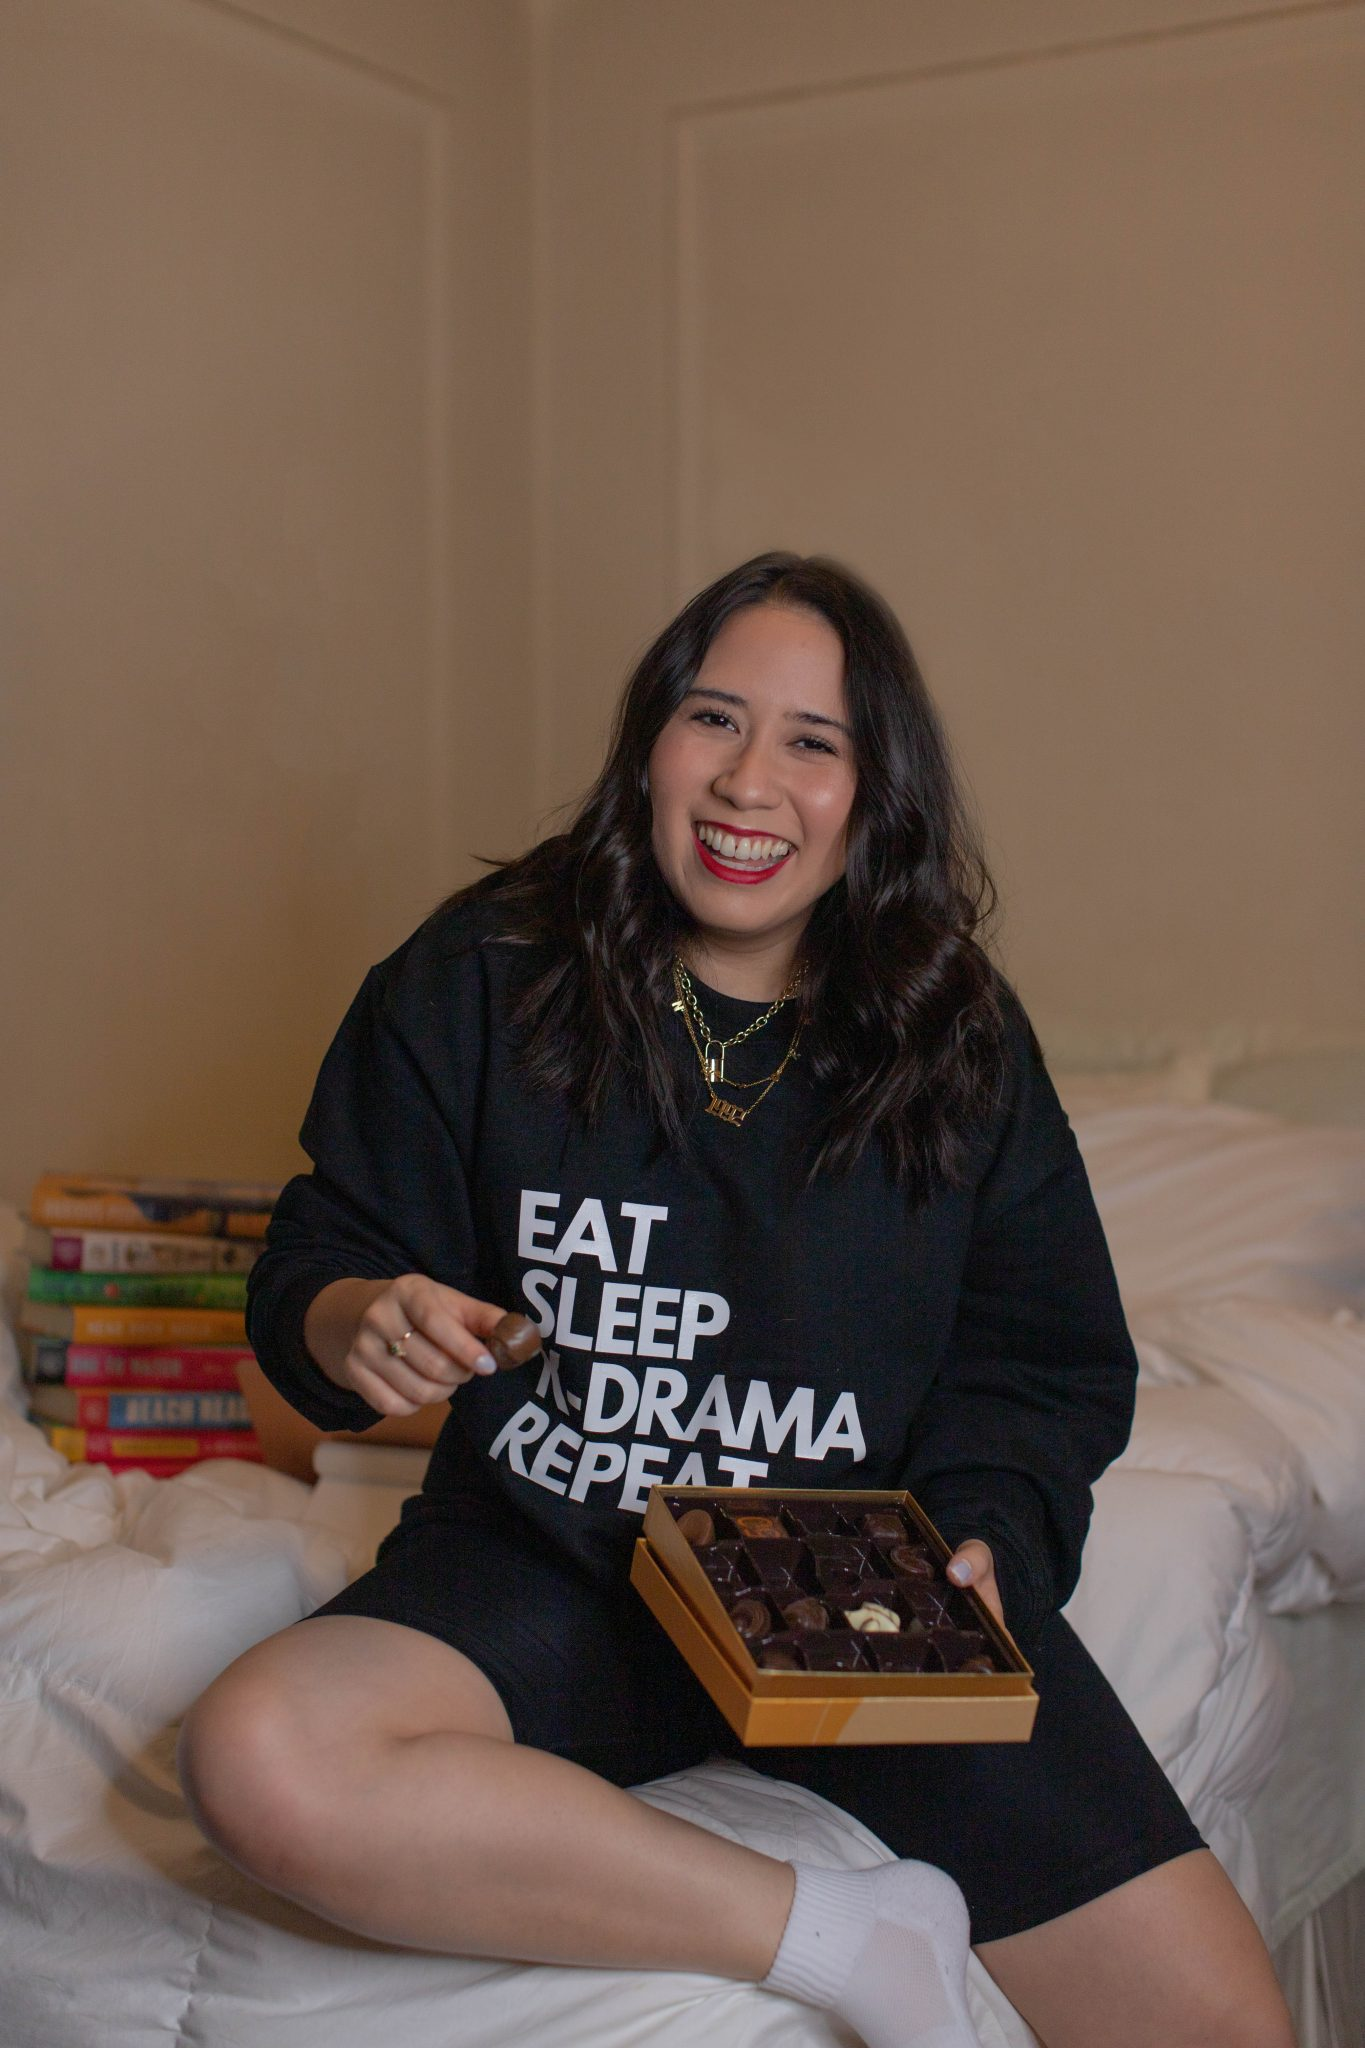 Introducing Basically A Mess by popular NYC life and style blog, Basically A Mess: image of a woman in a K-Drama sweatshirt for a blog relaunch photoshoot